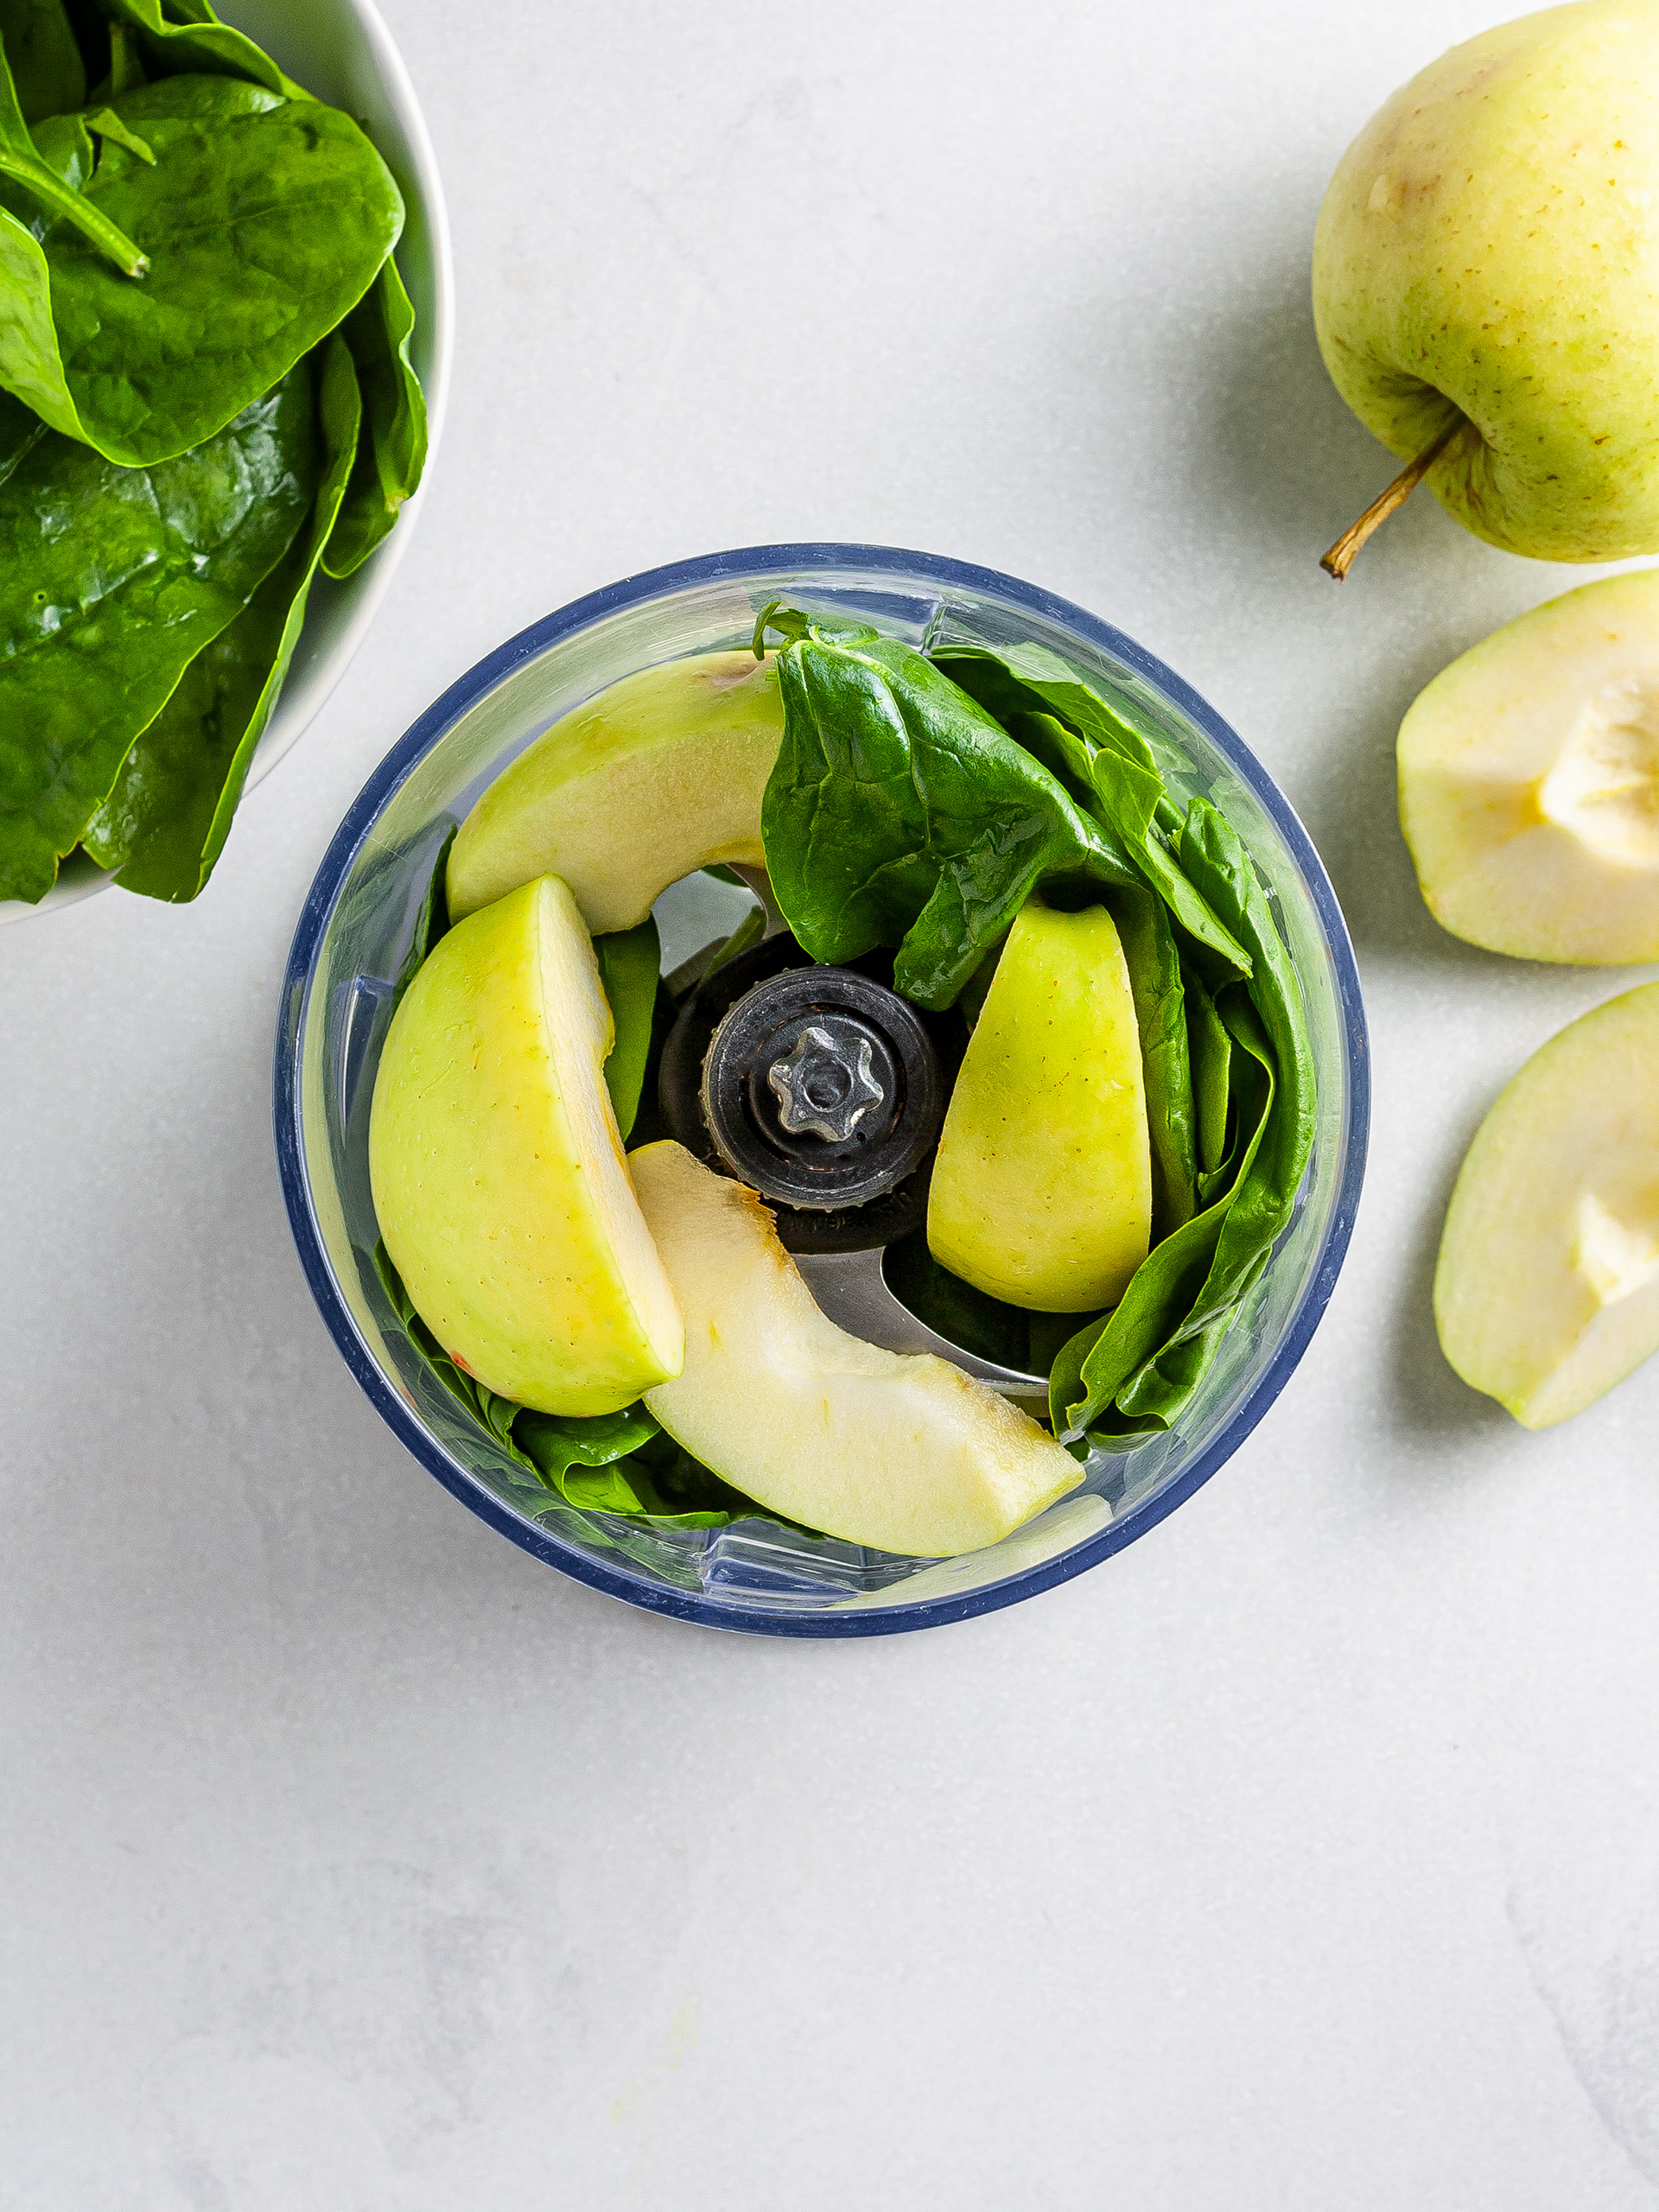 Apples and spinach in food processor